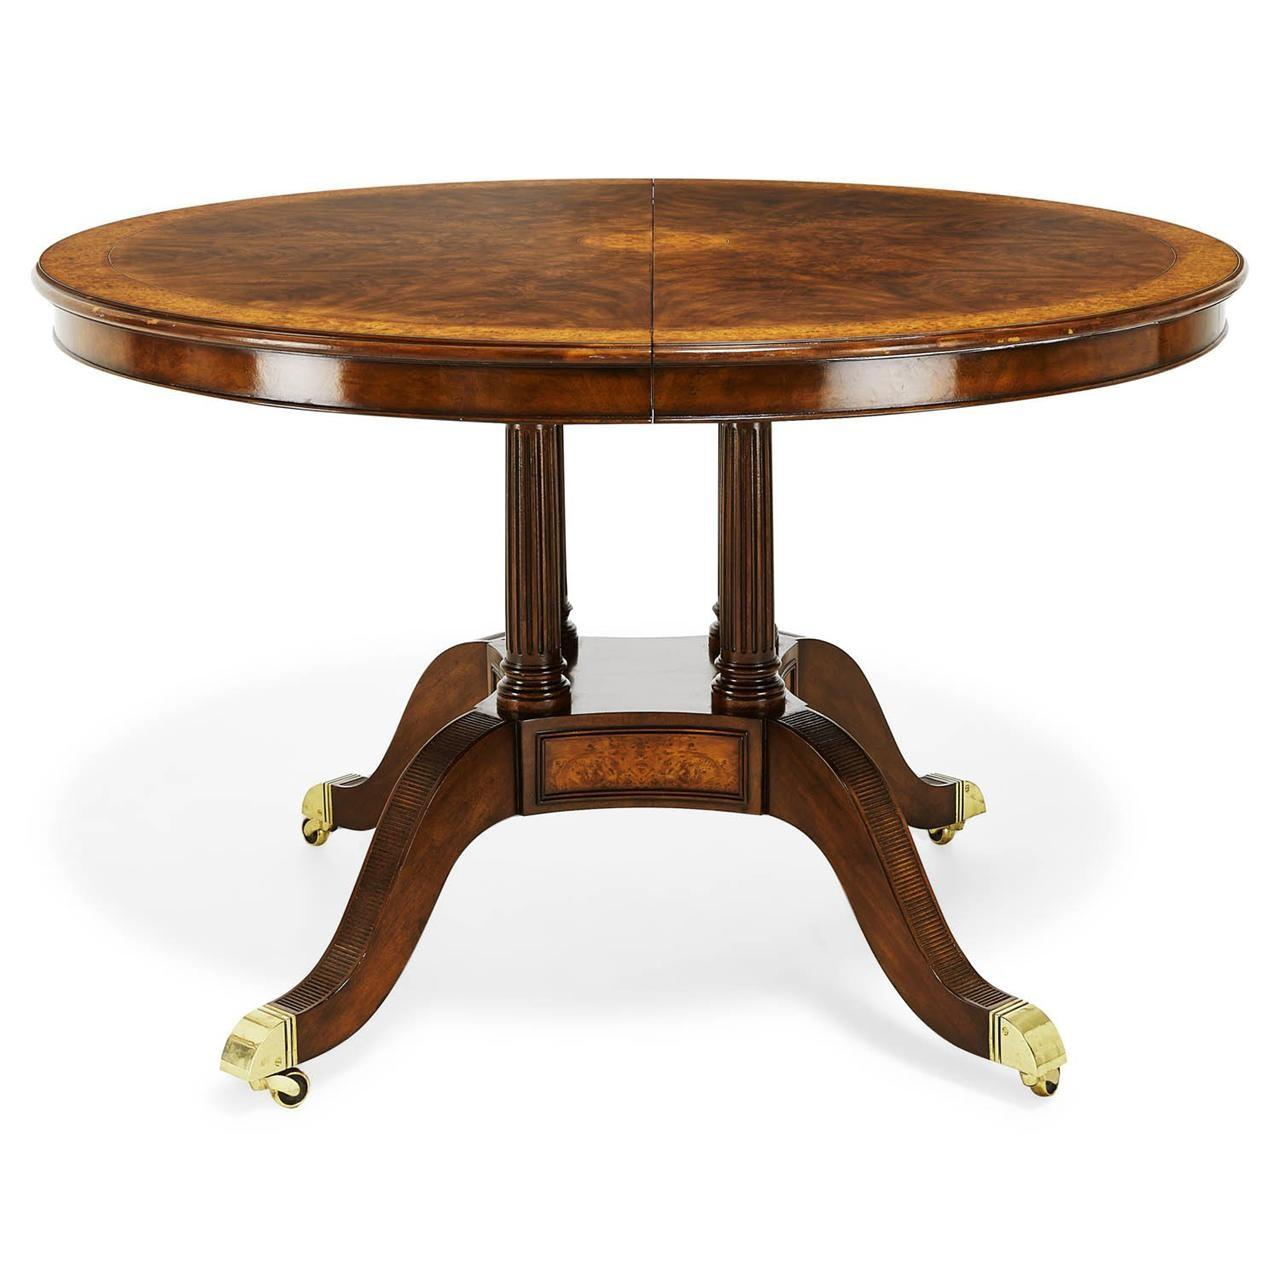 Inch Round Oval Walnut Yew Banded Dining Table